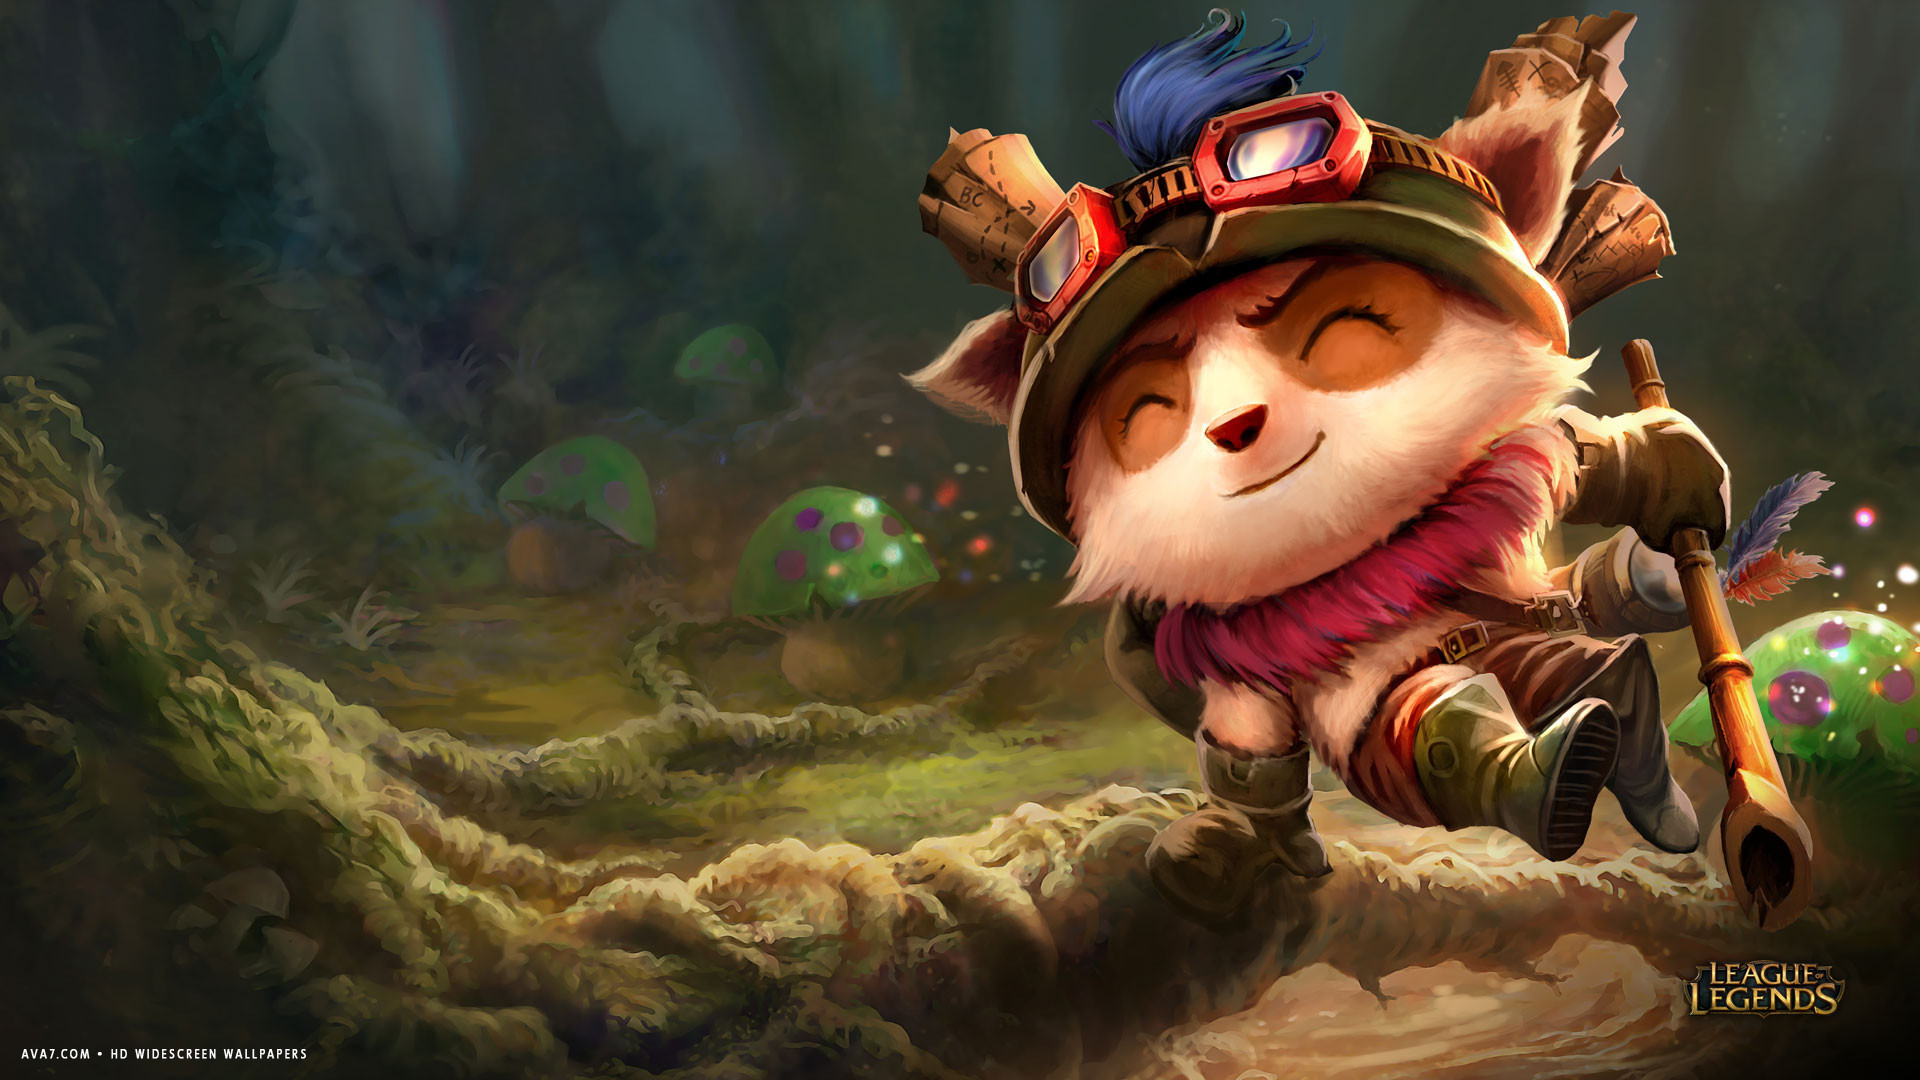 league of legends game lol teemo small cute hd widescreen wallpaper